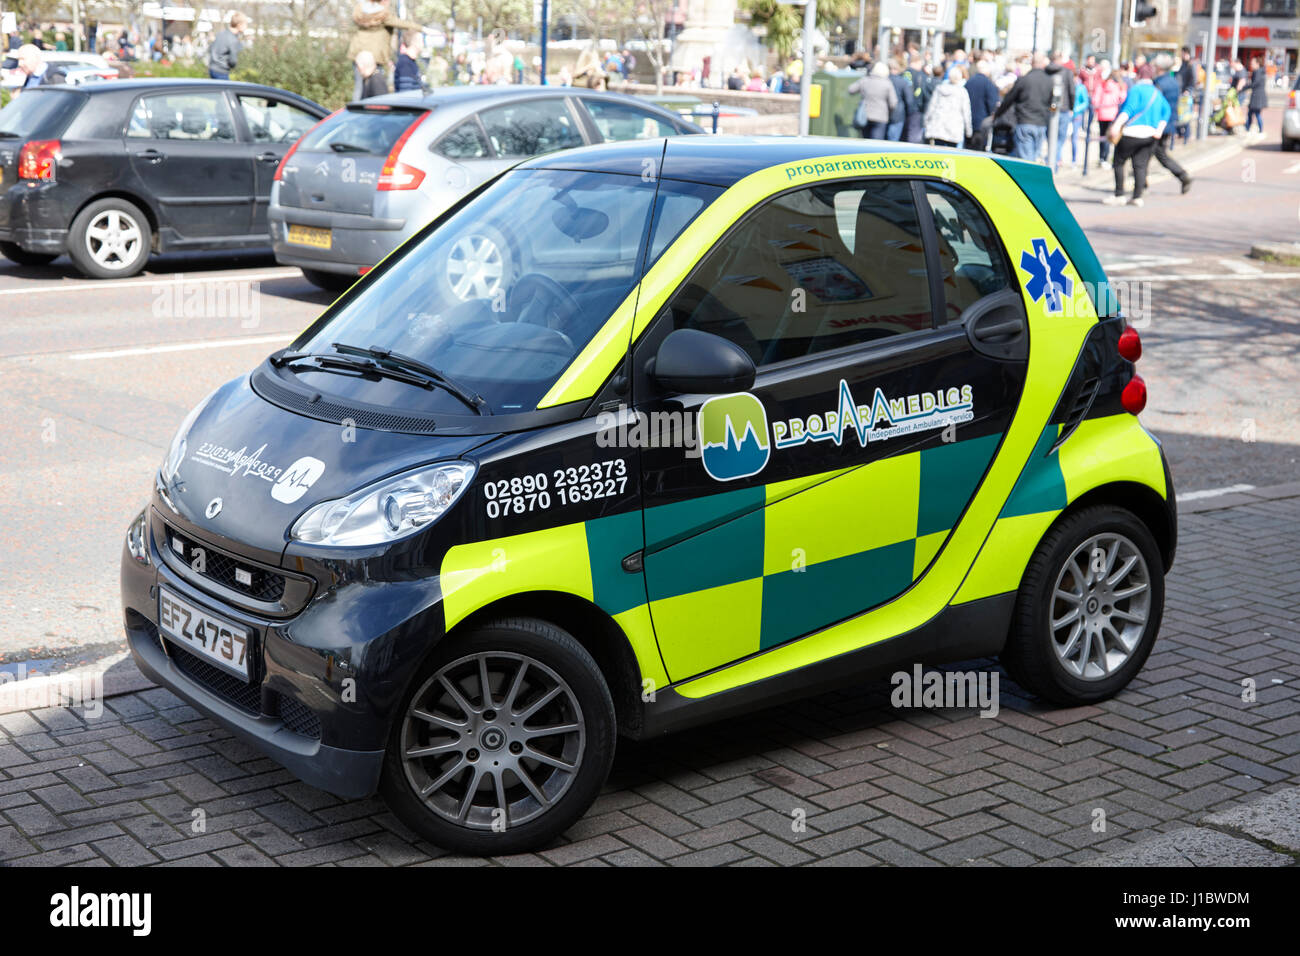 smart car used by private paramedic company in the uk - Stock Image